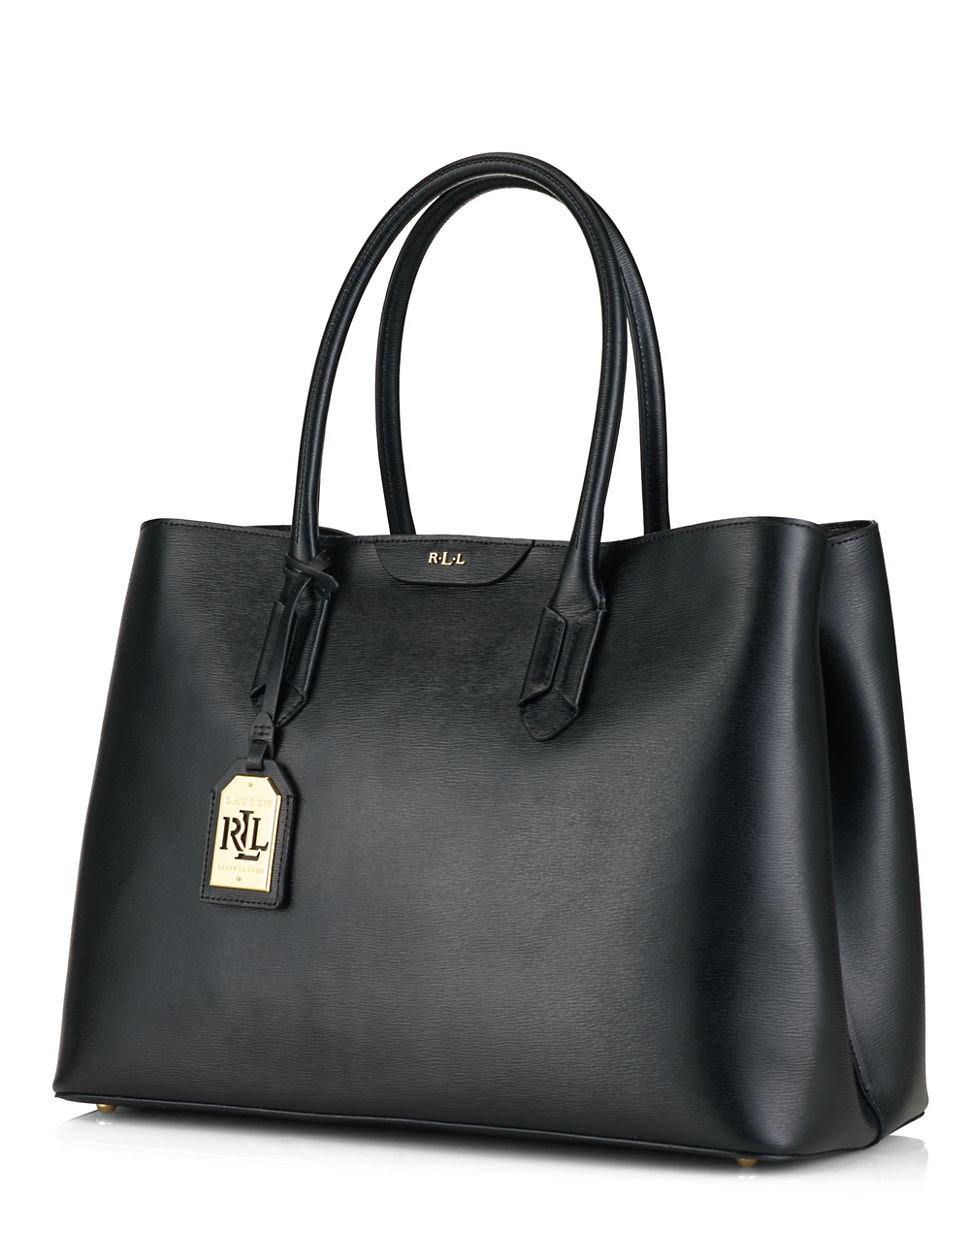 Ralph Lauren Tote Laukku : Lauren by ralph tate leather city tote bag in black